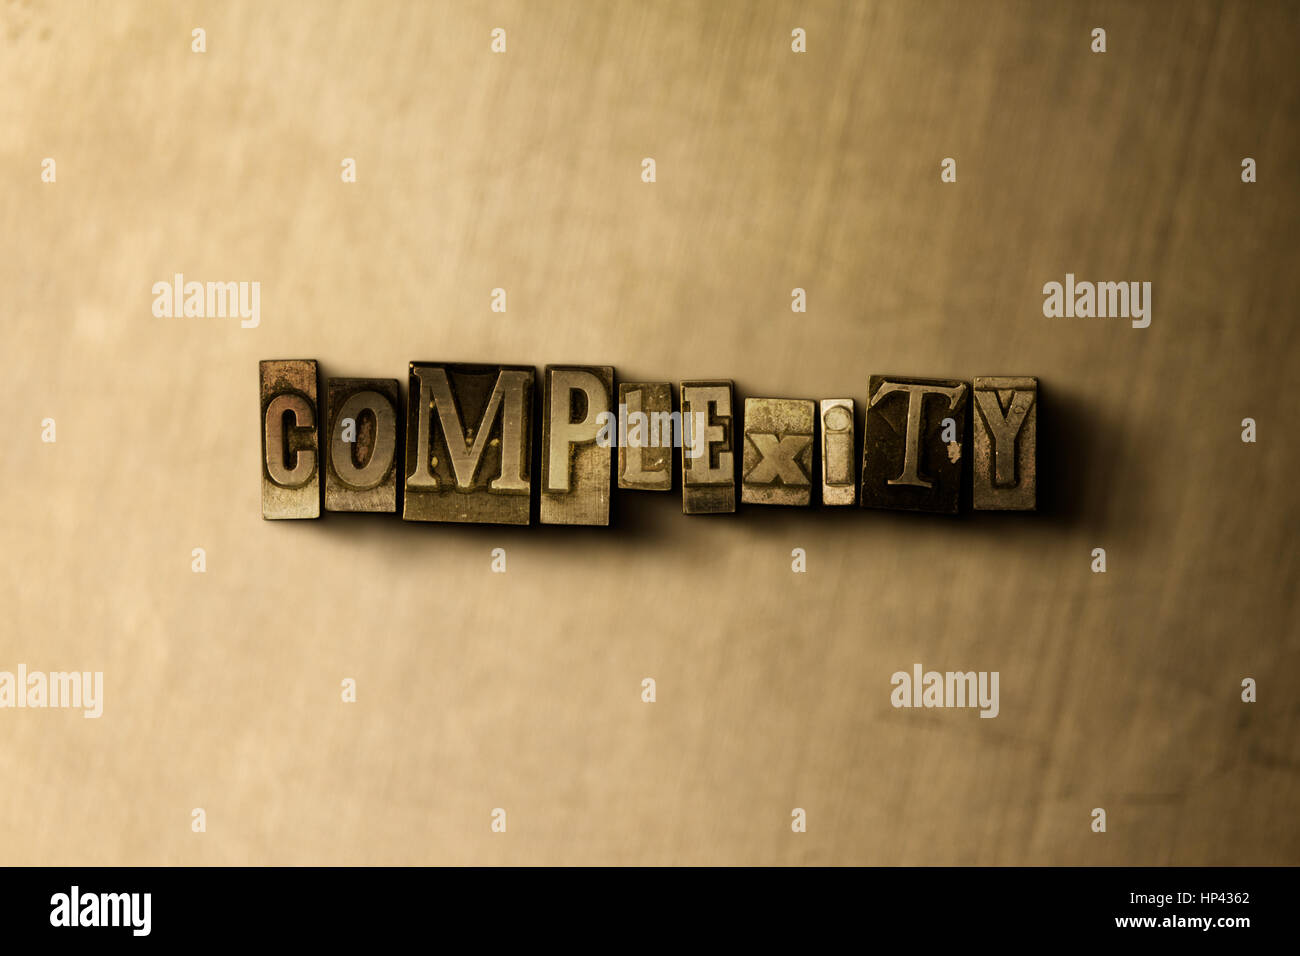 COMPLEXITY - close-up of grungy vintage typeset word on metal backdrop. Royalty free stock illustration.  Can be - Stock Image